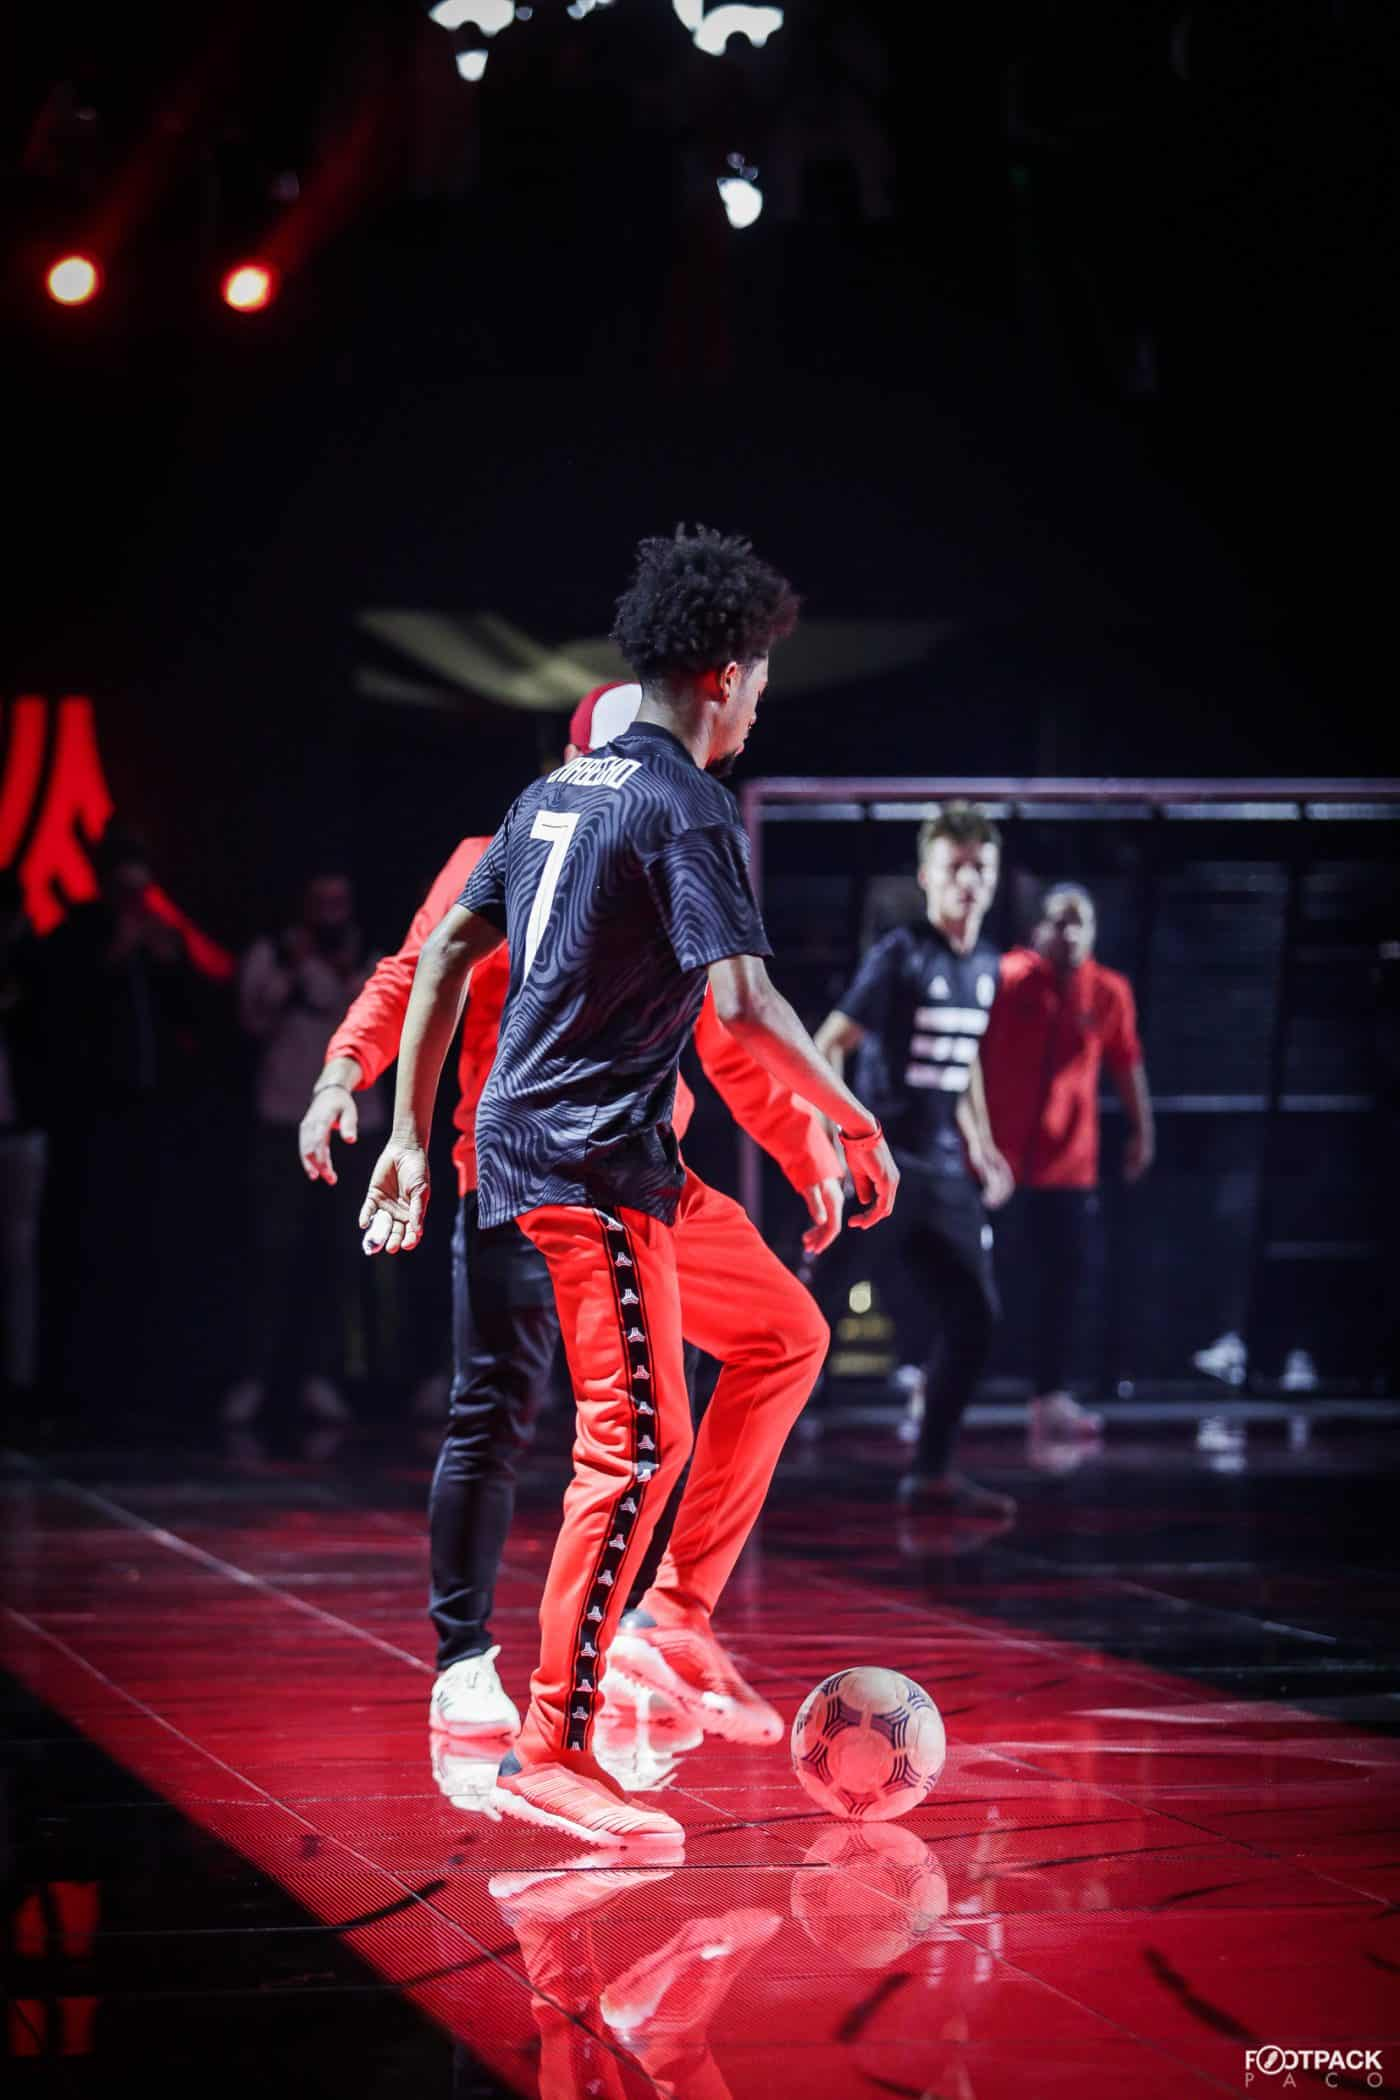 adidas-finale-tango-league-2018-paris-footpack-28